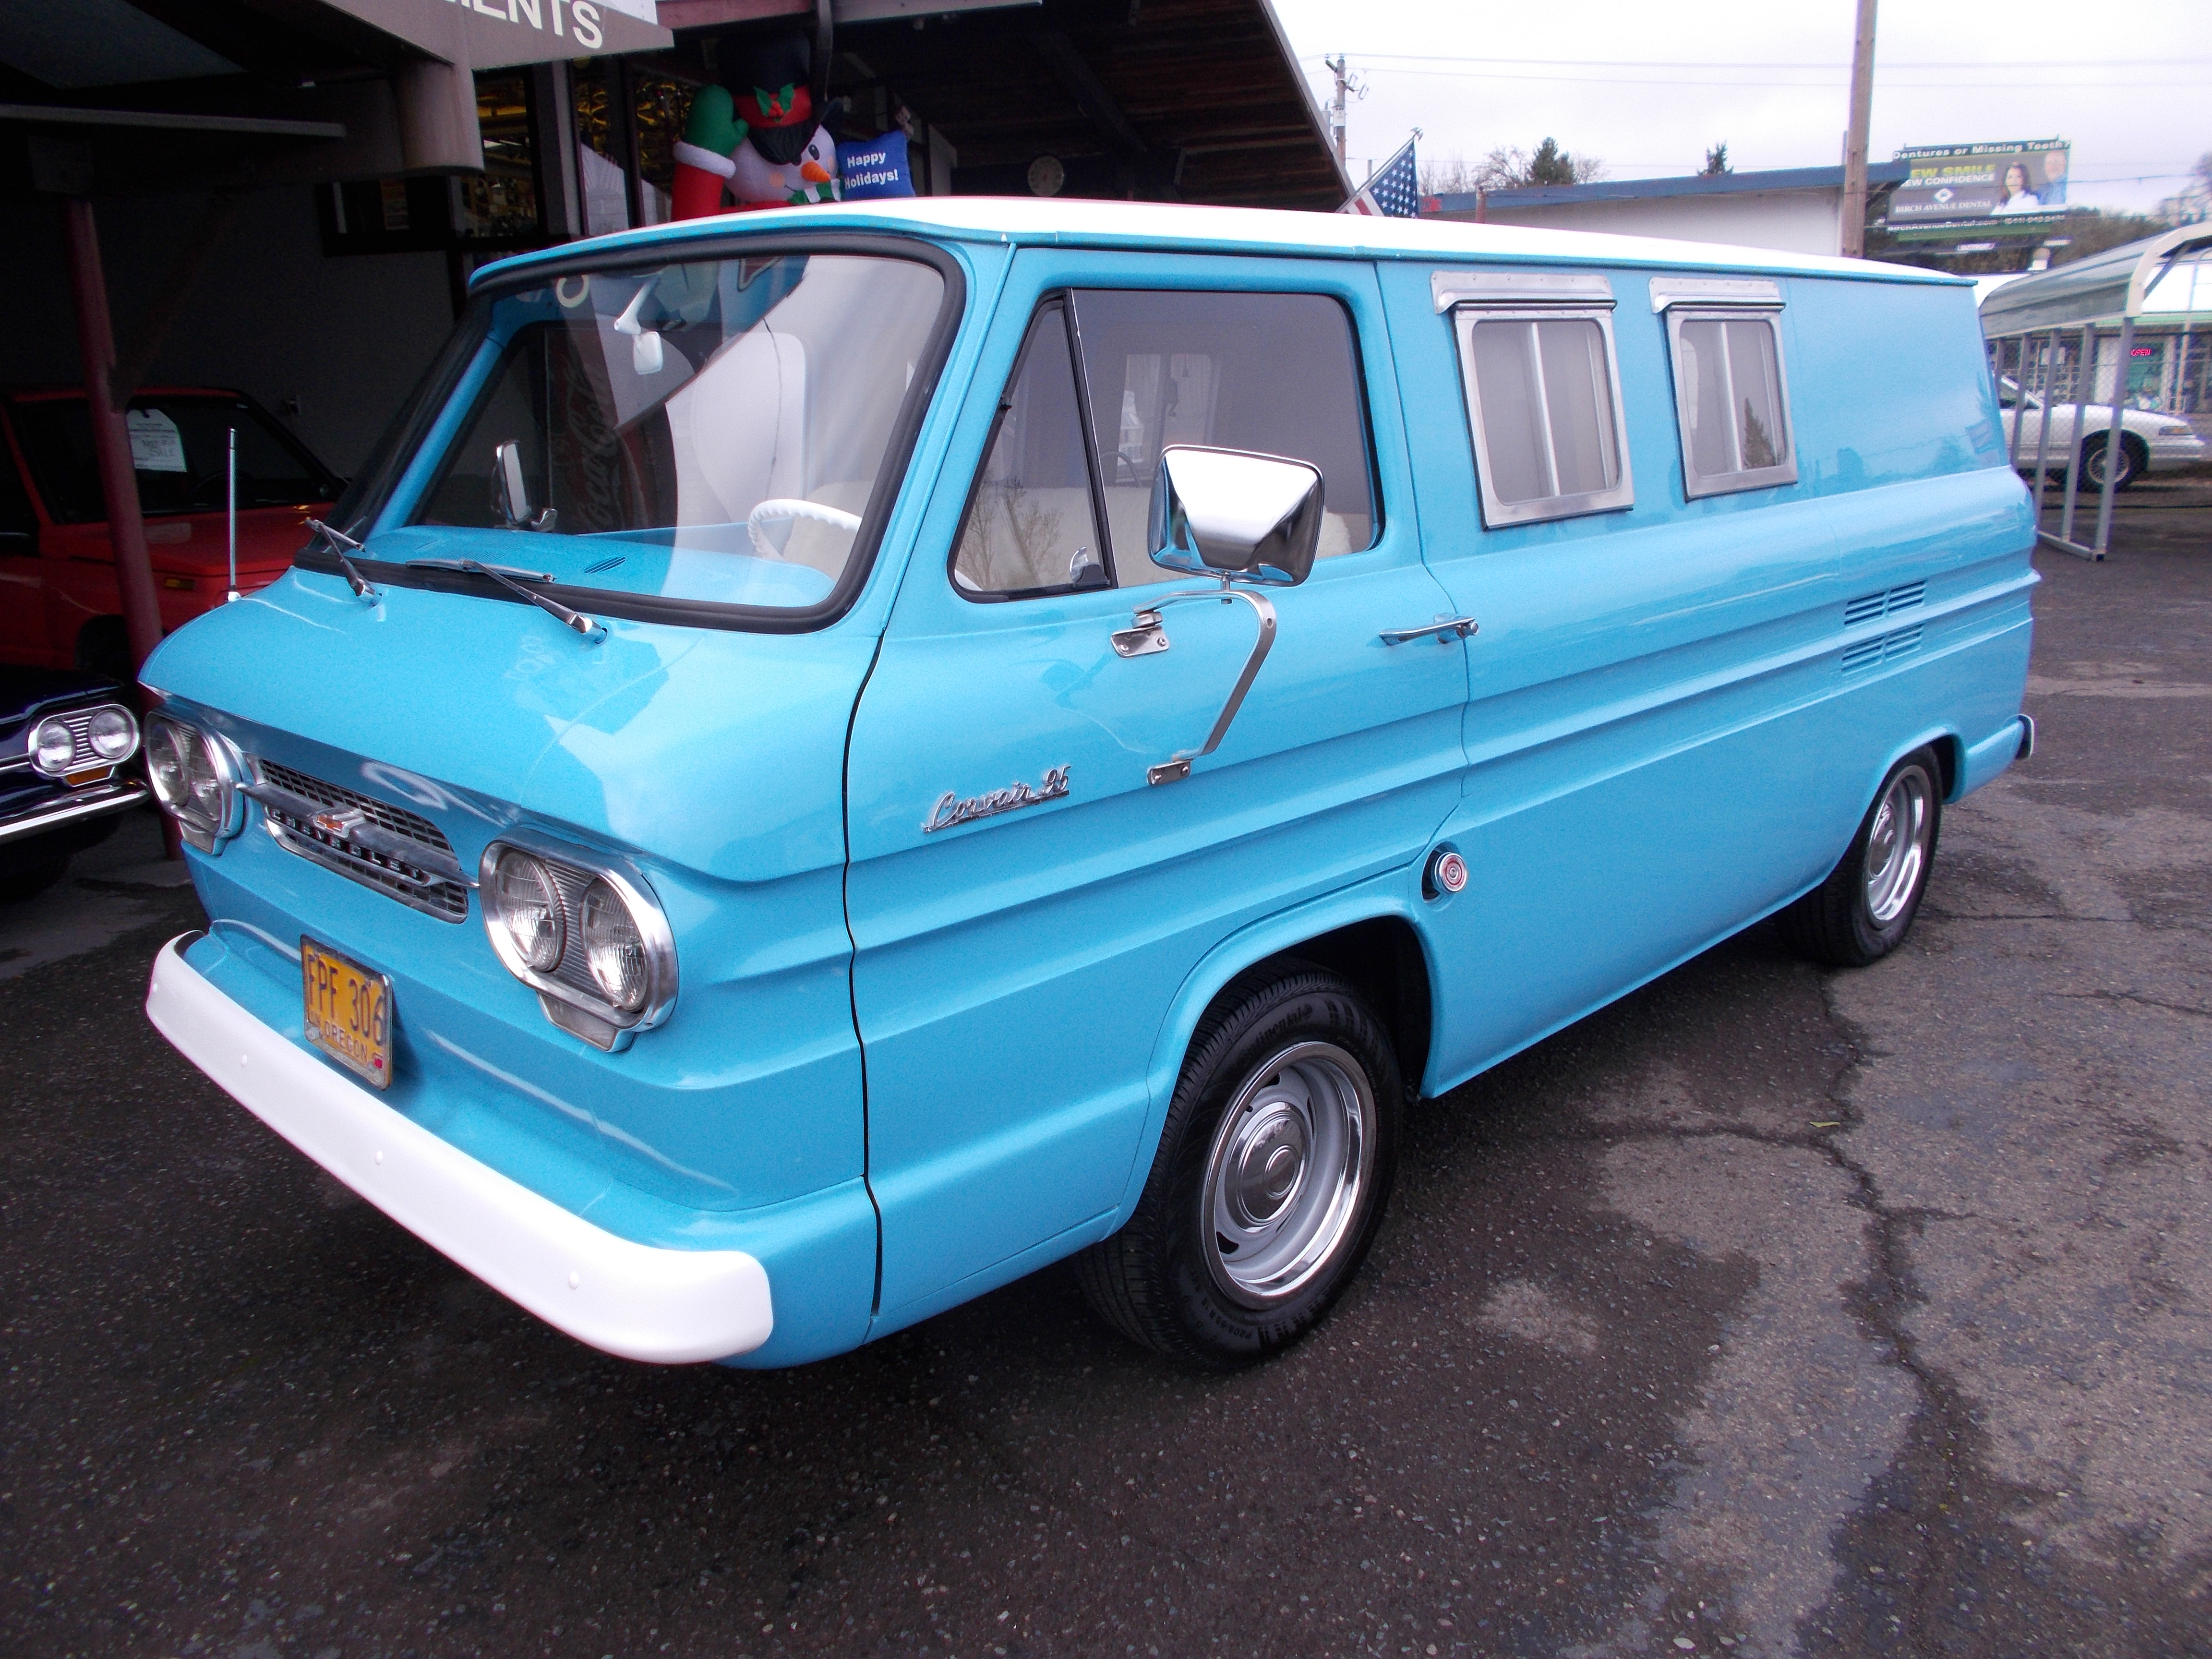 Hamilton Auto Sales 1968 Chevy Suburban 4x4 1962 Corvair 95 Van Camper Very Nice Recent Restoration With All Paper Work And Pictures Before During 6cyl 4spd